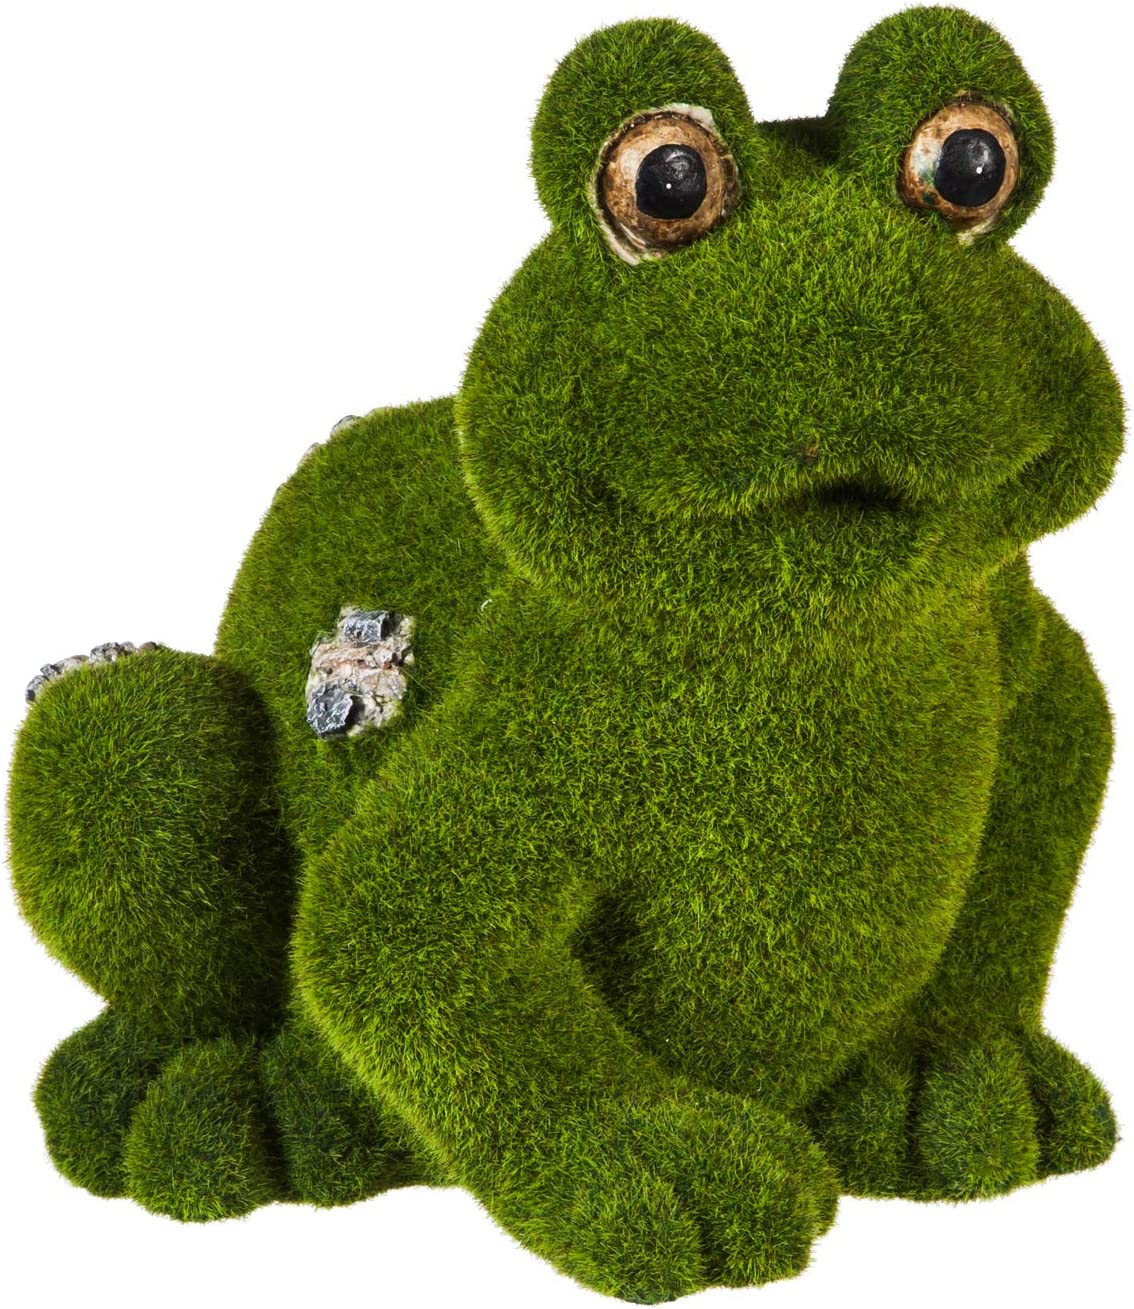 New Creative Evergreen Garden Frocked 14 inch Outdoor Frog Figurine